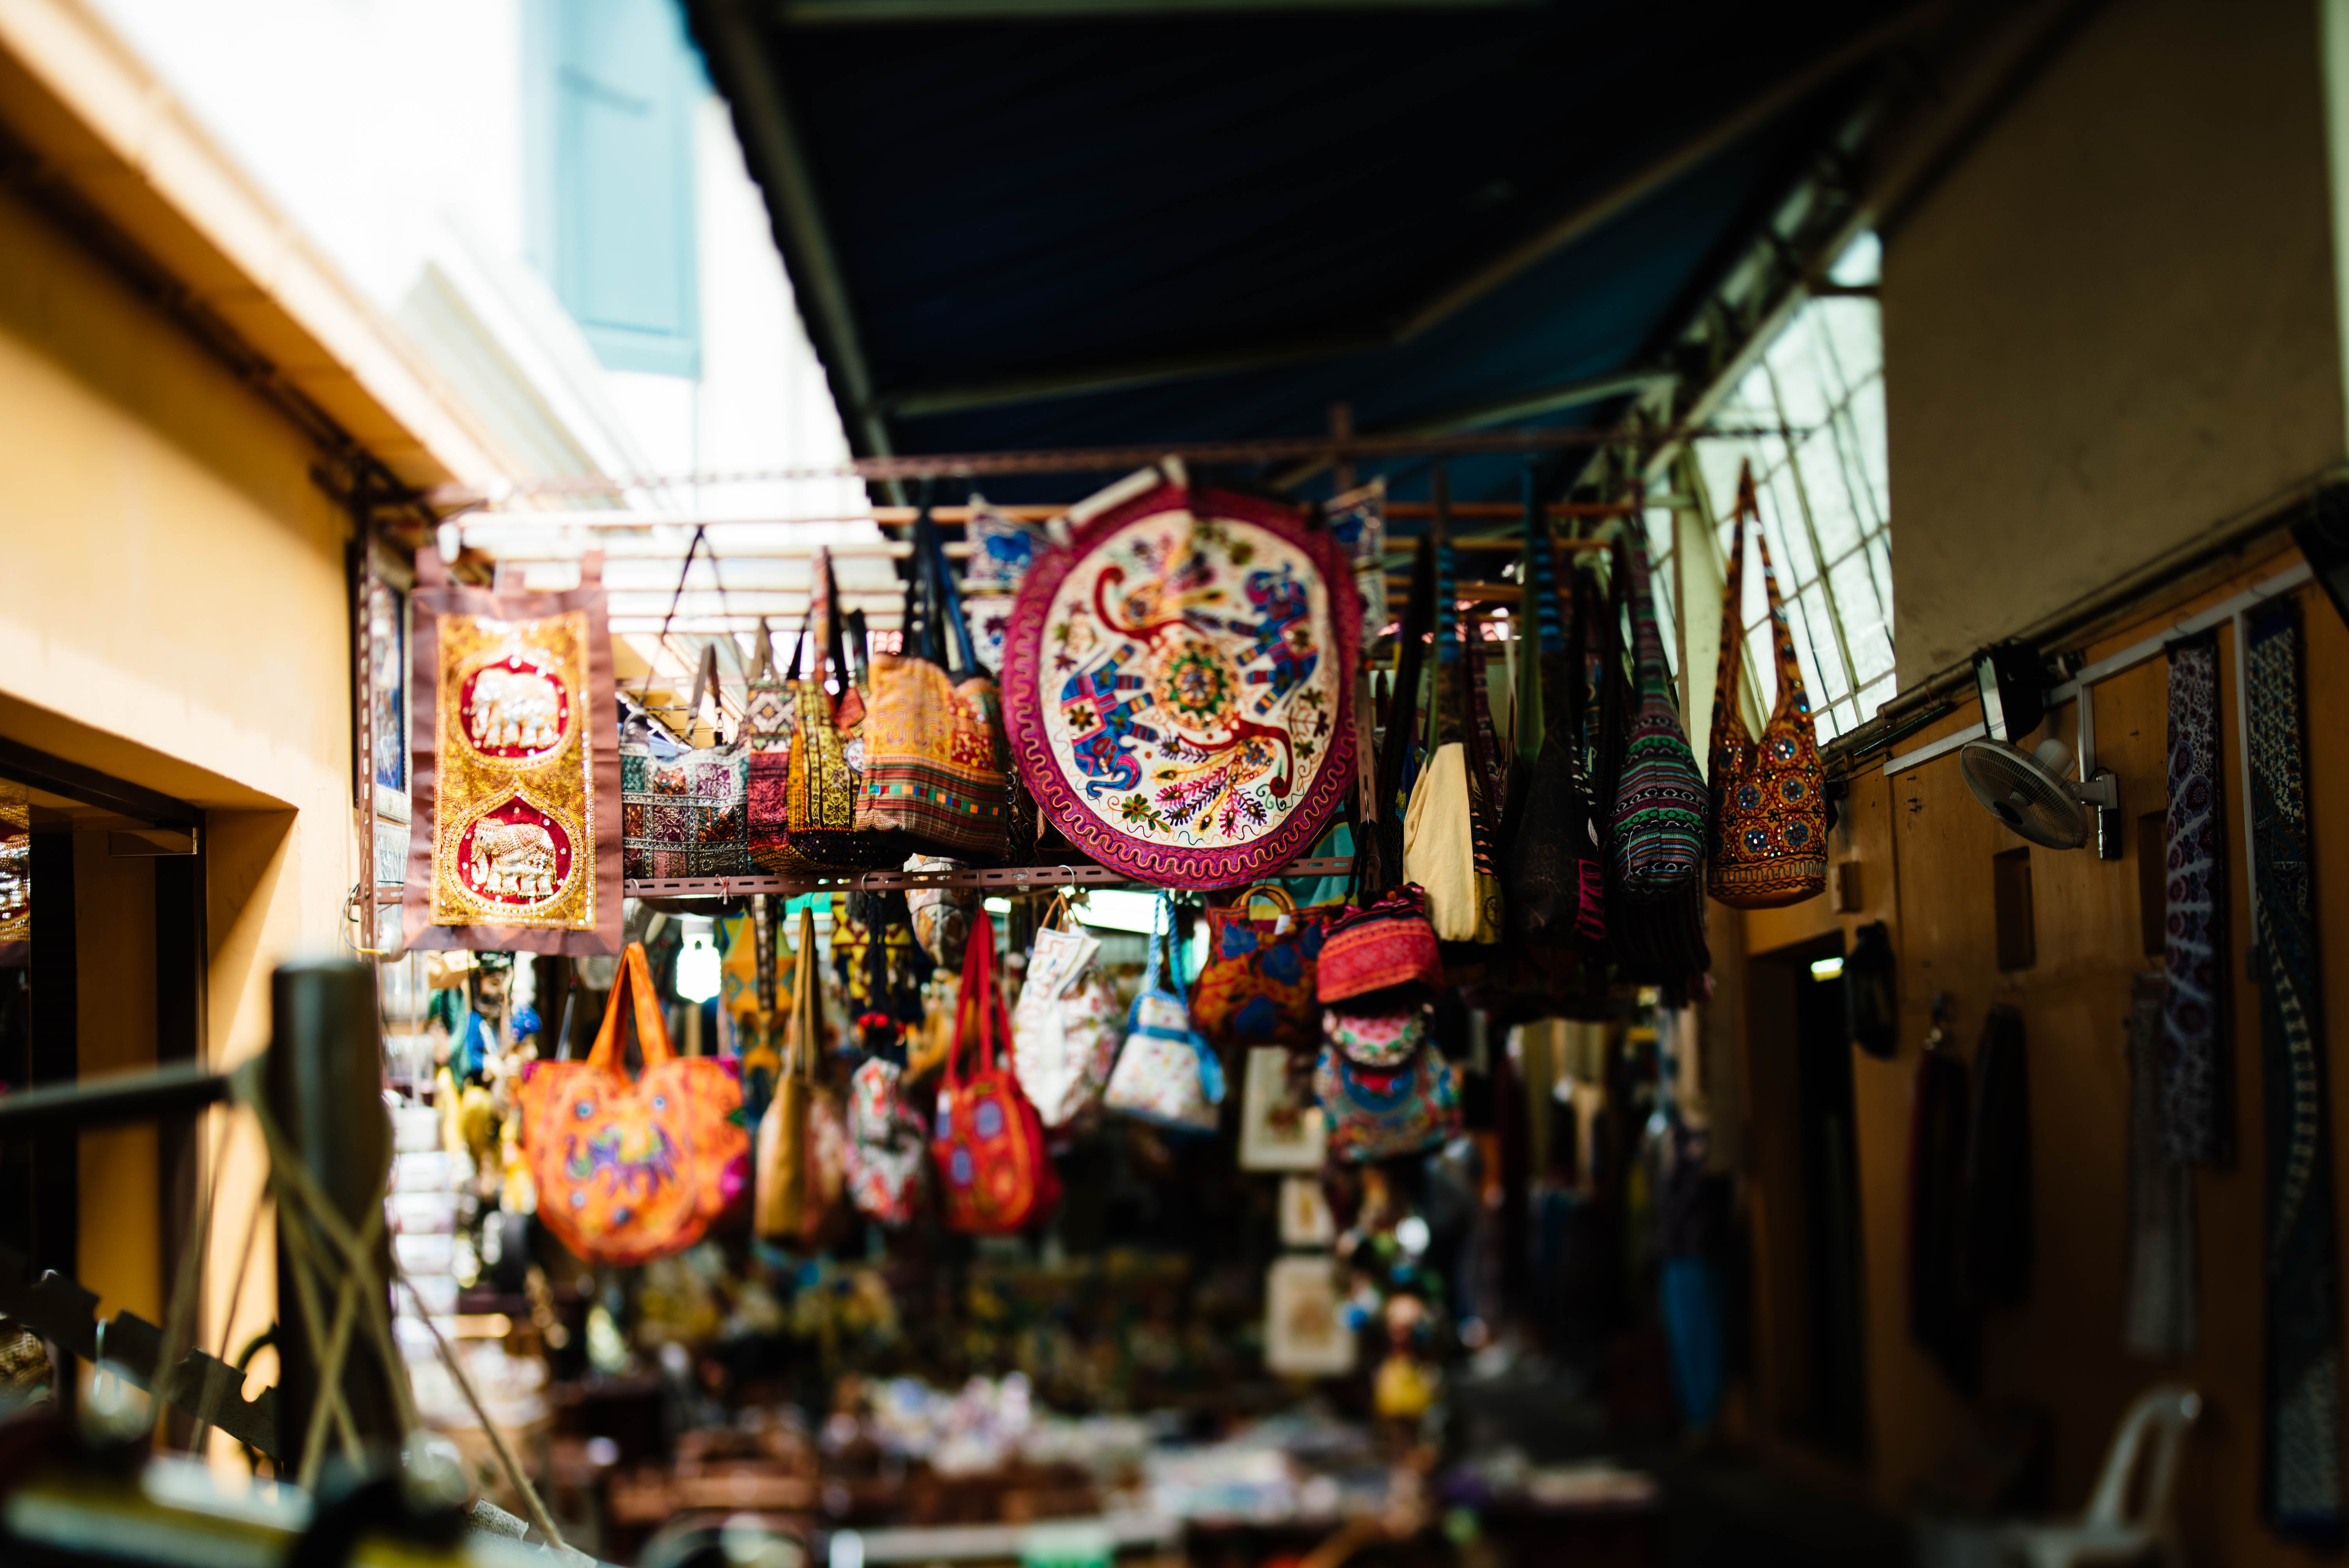 A street market stall selling various pattered and colored satchels and handbags in a narrow alley